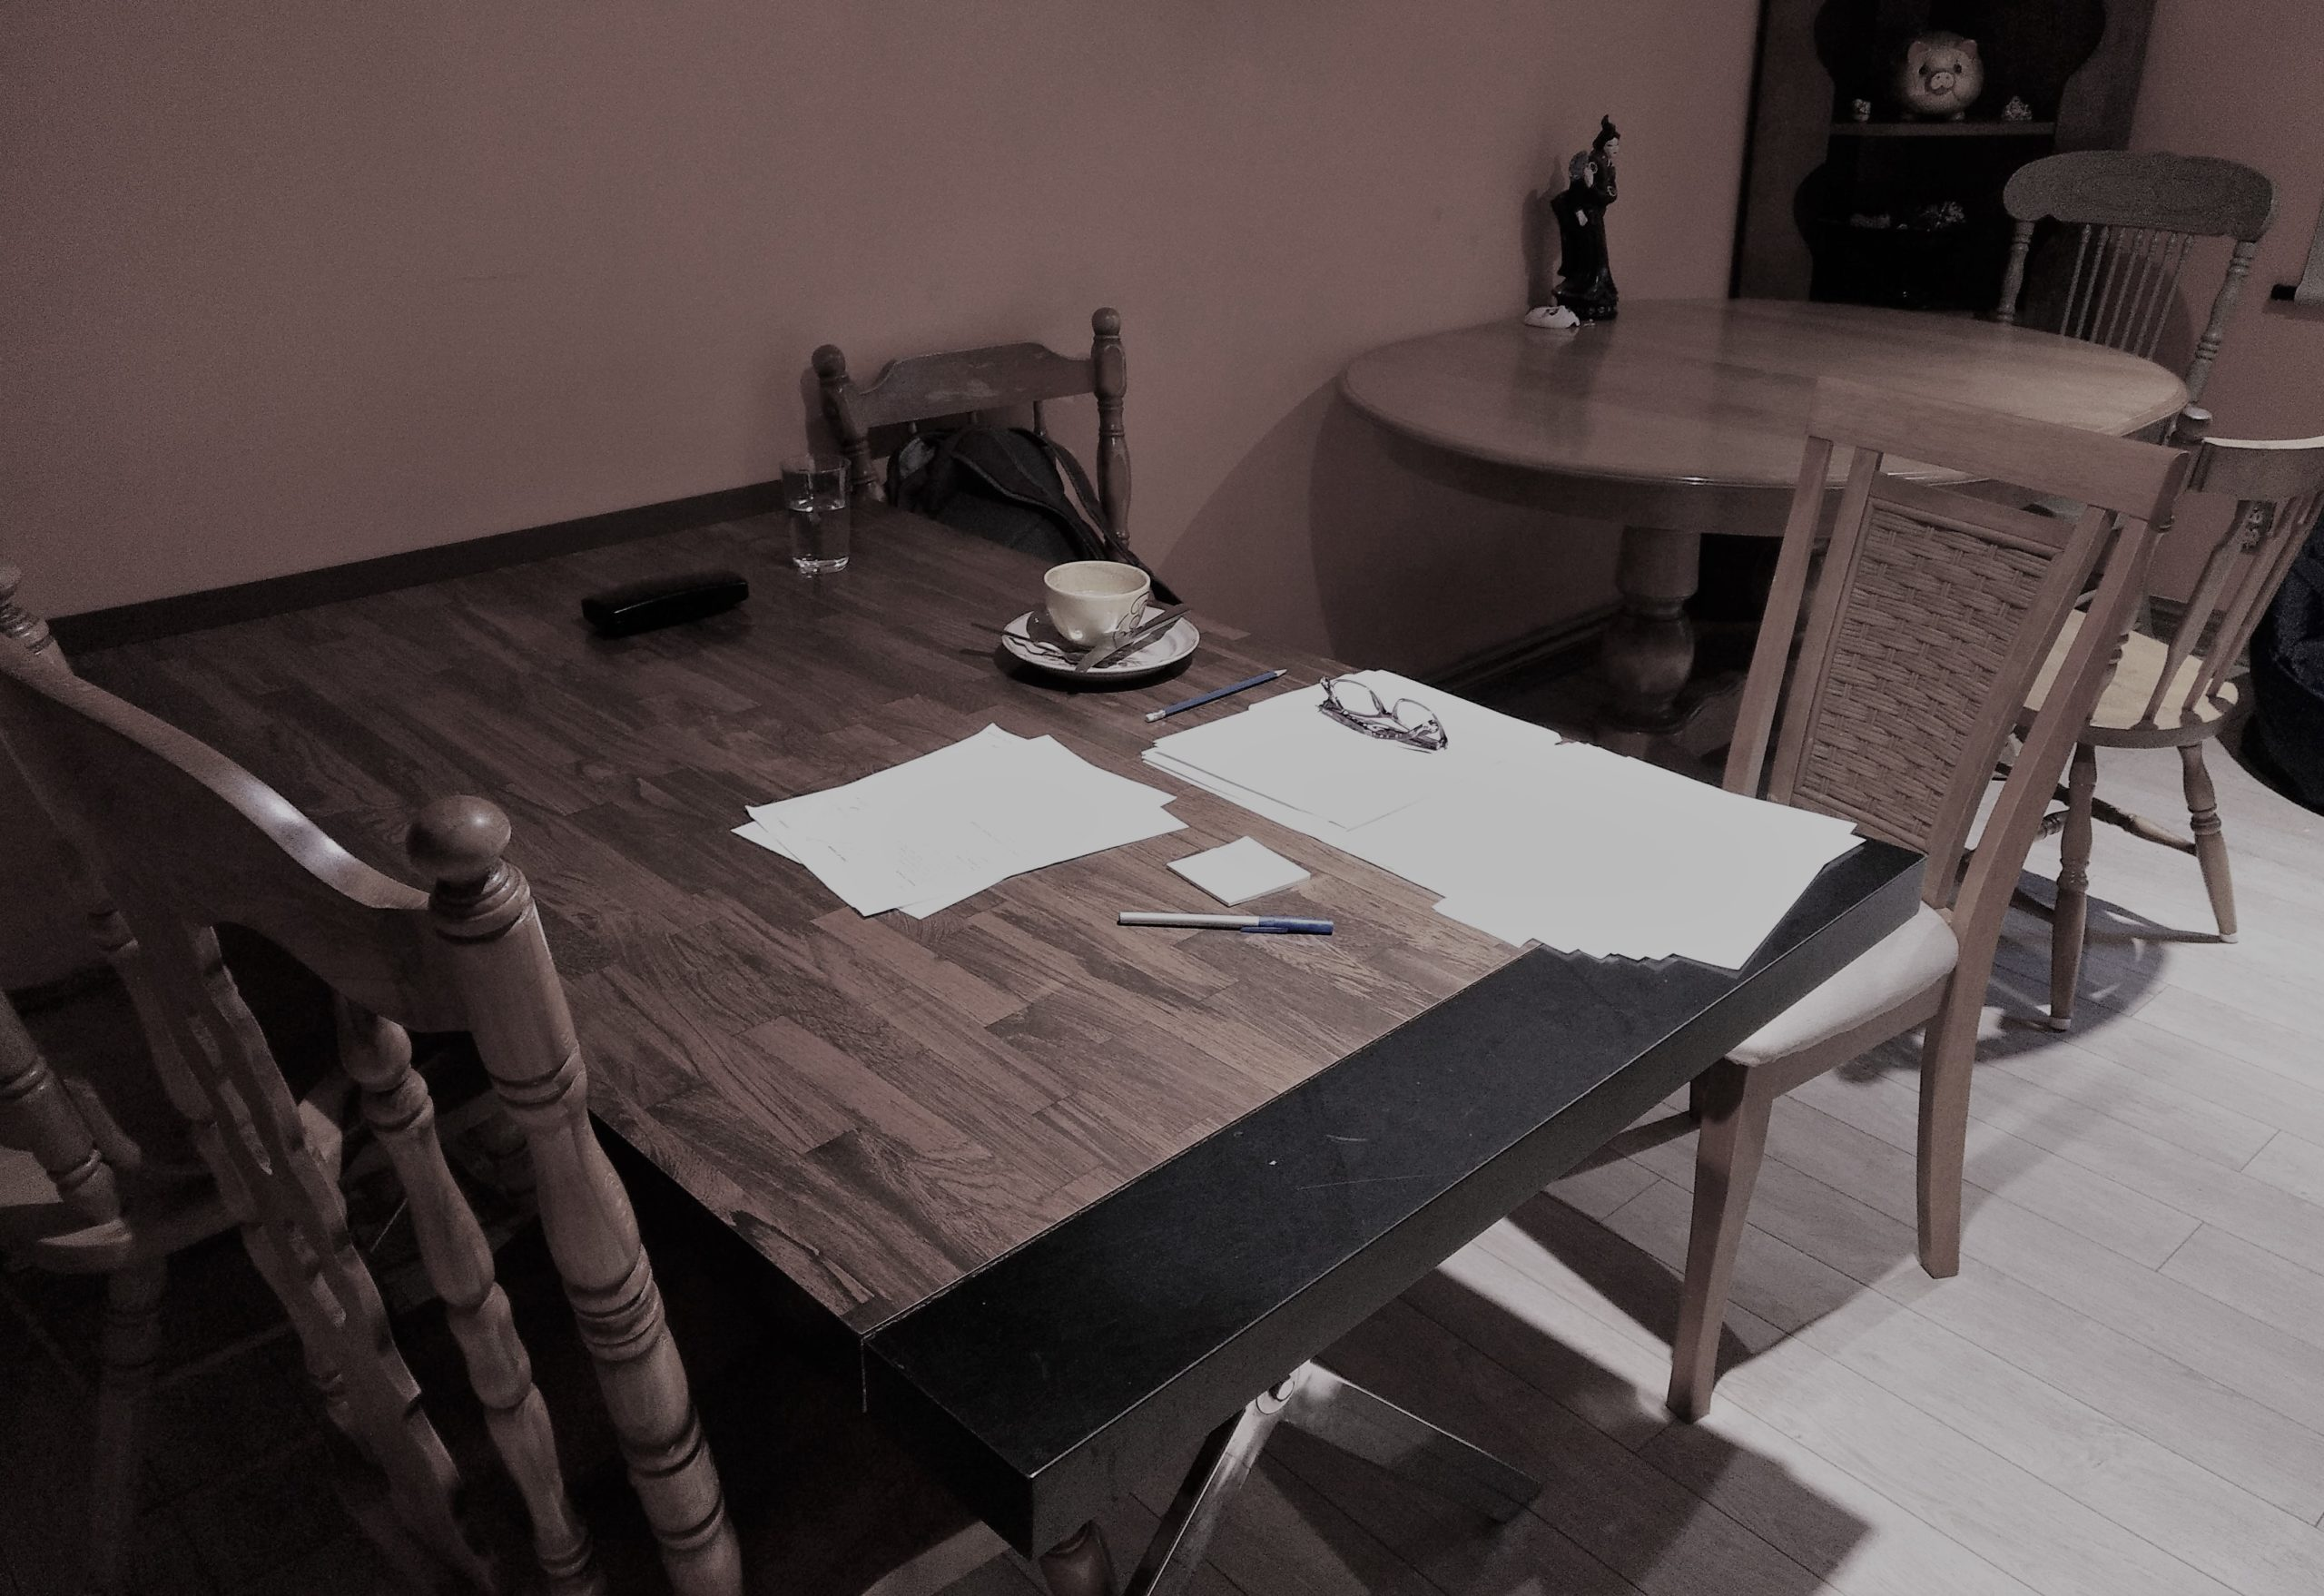 Table with writing papers, pen, coffee cup and glasses